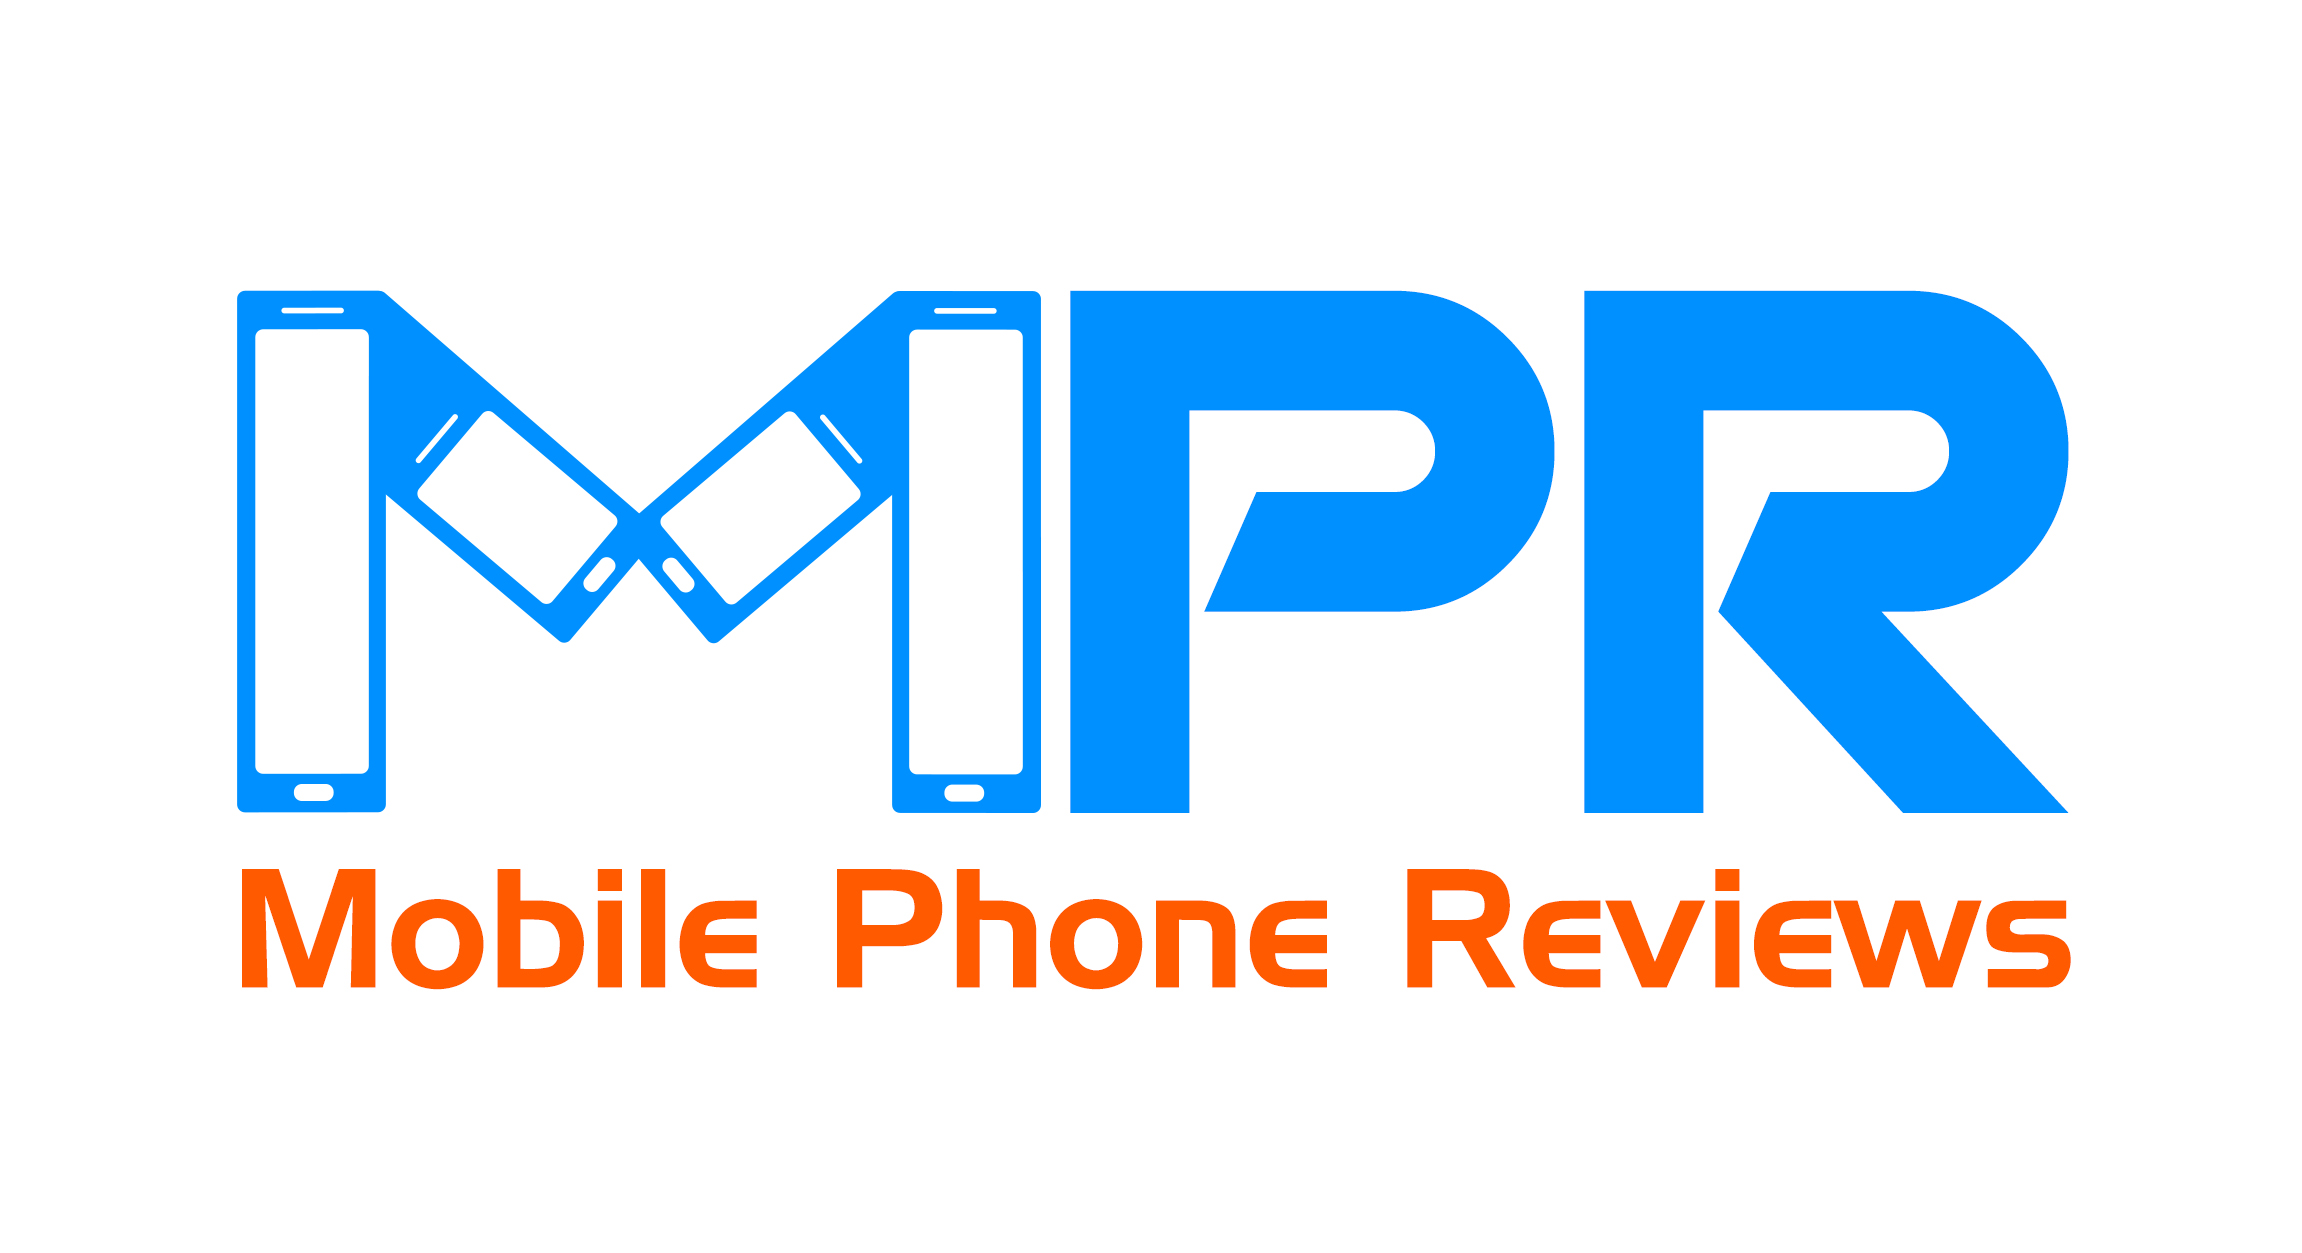 Mobile Phone Reviews